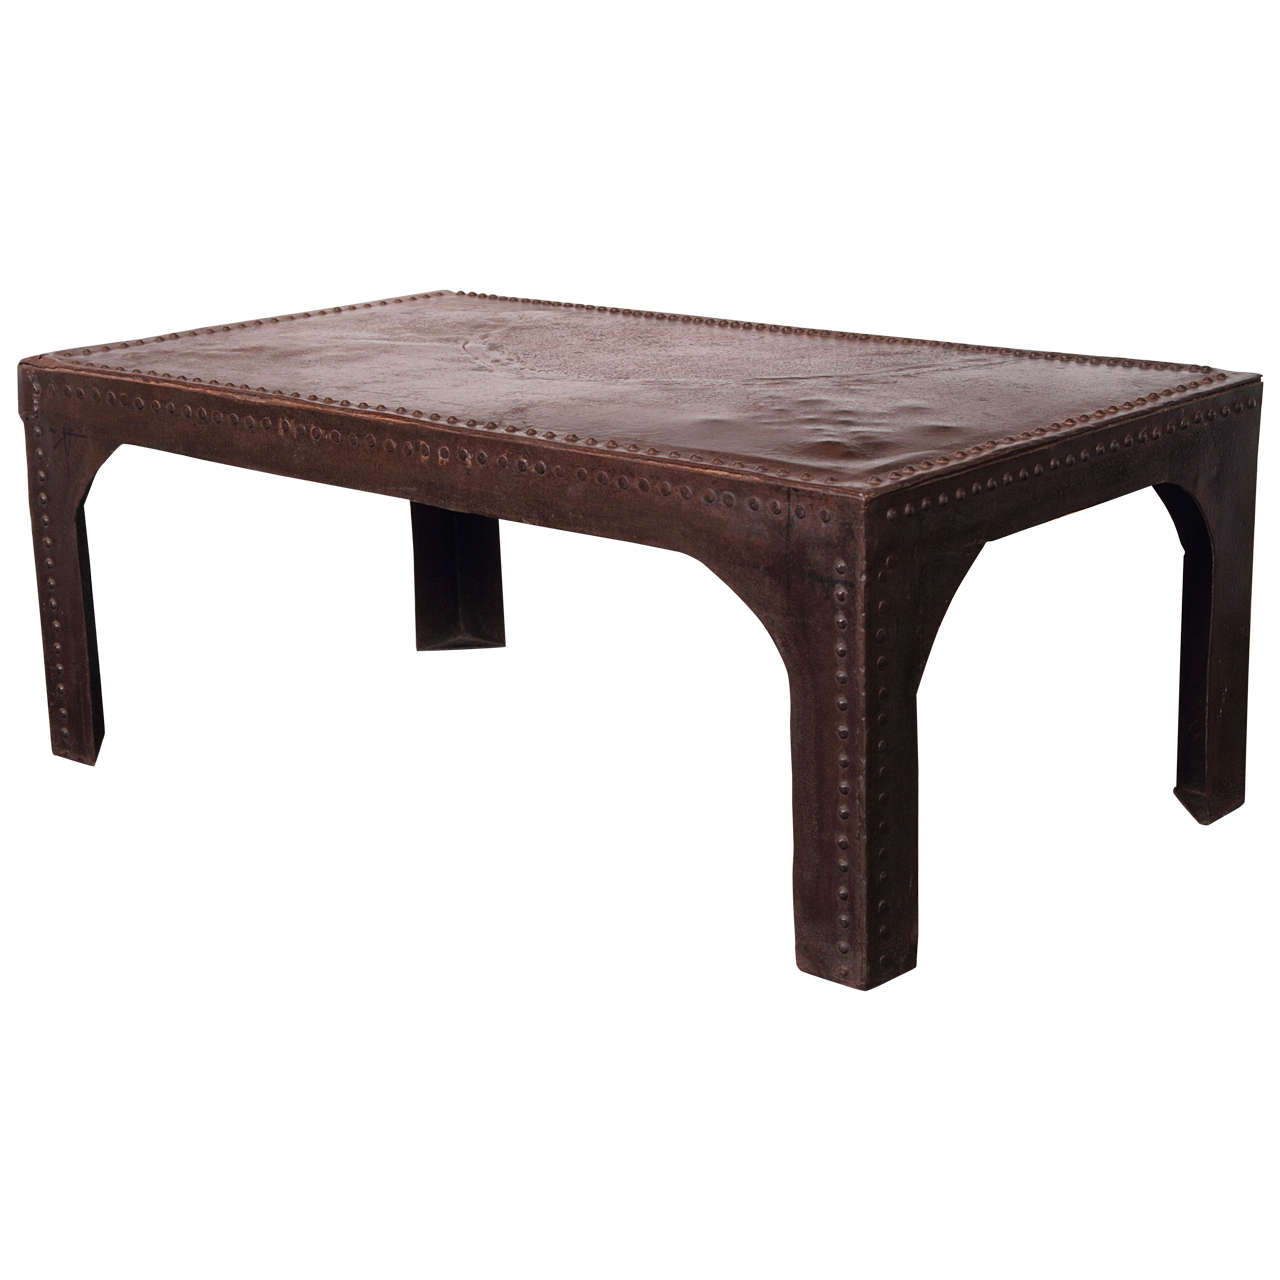 Industrial Styled Rivet Motif Coffee Table At 1stdibs